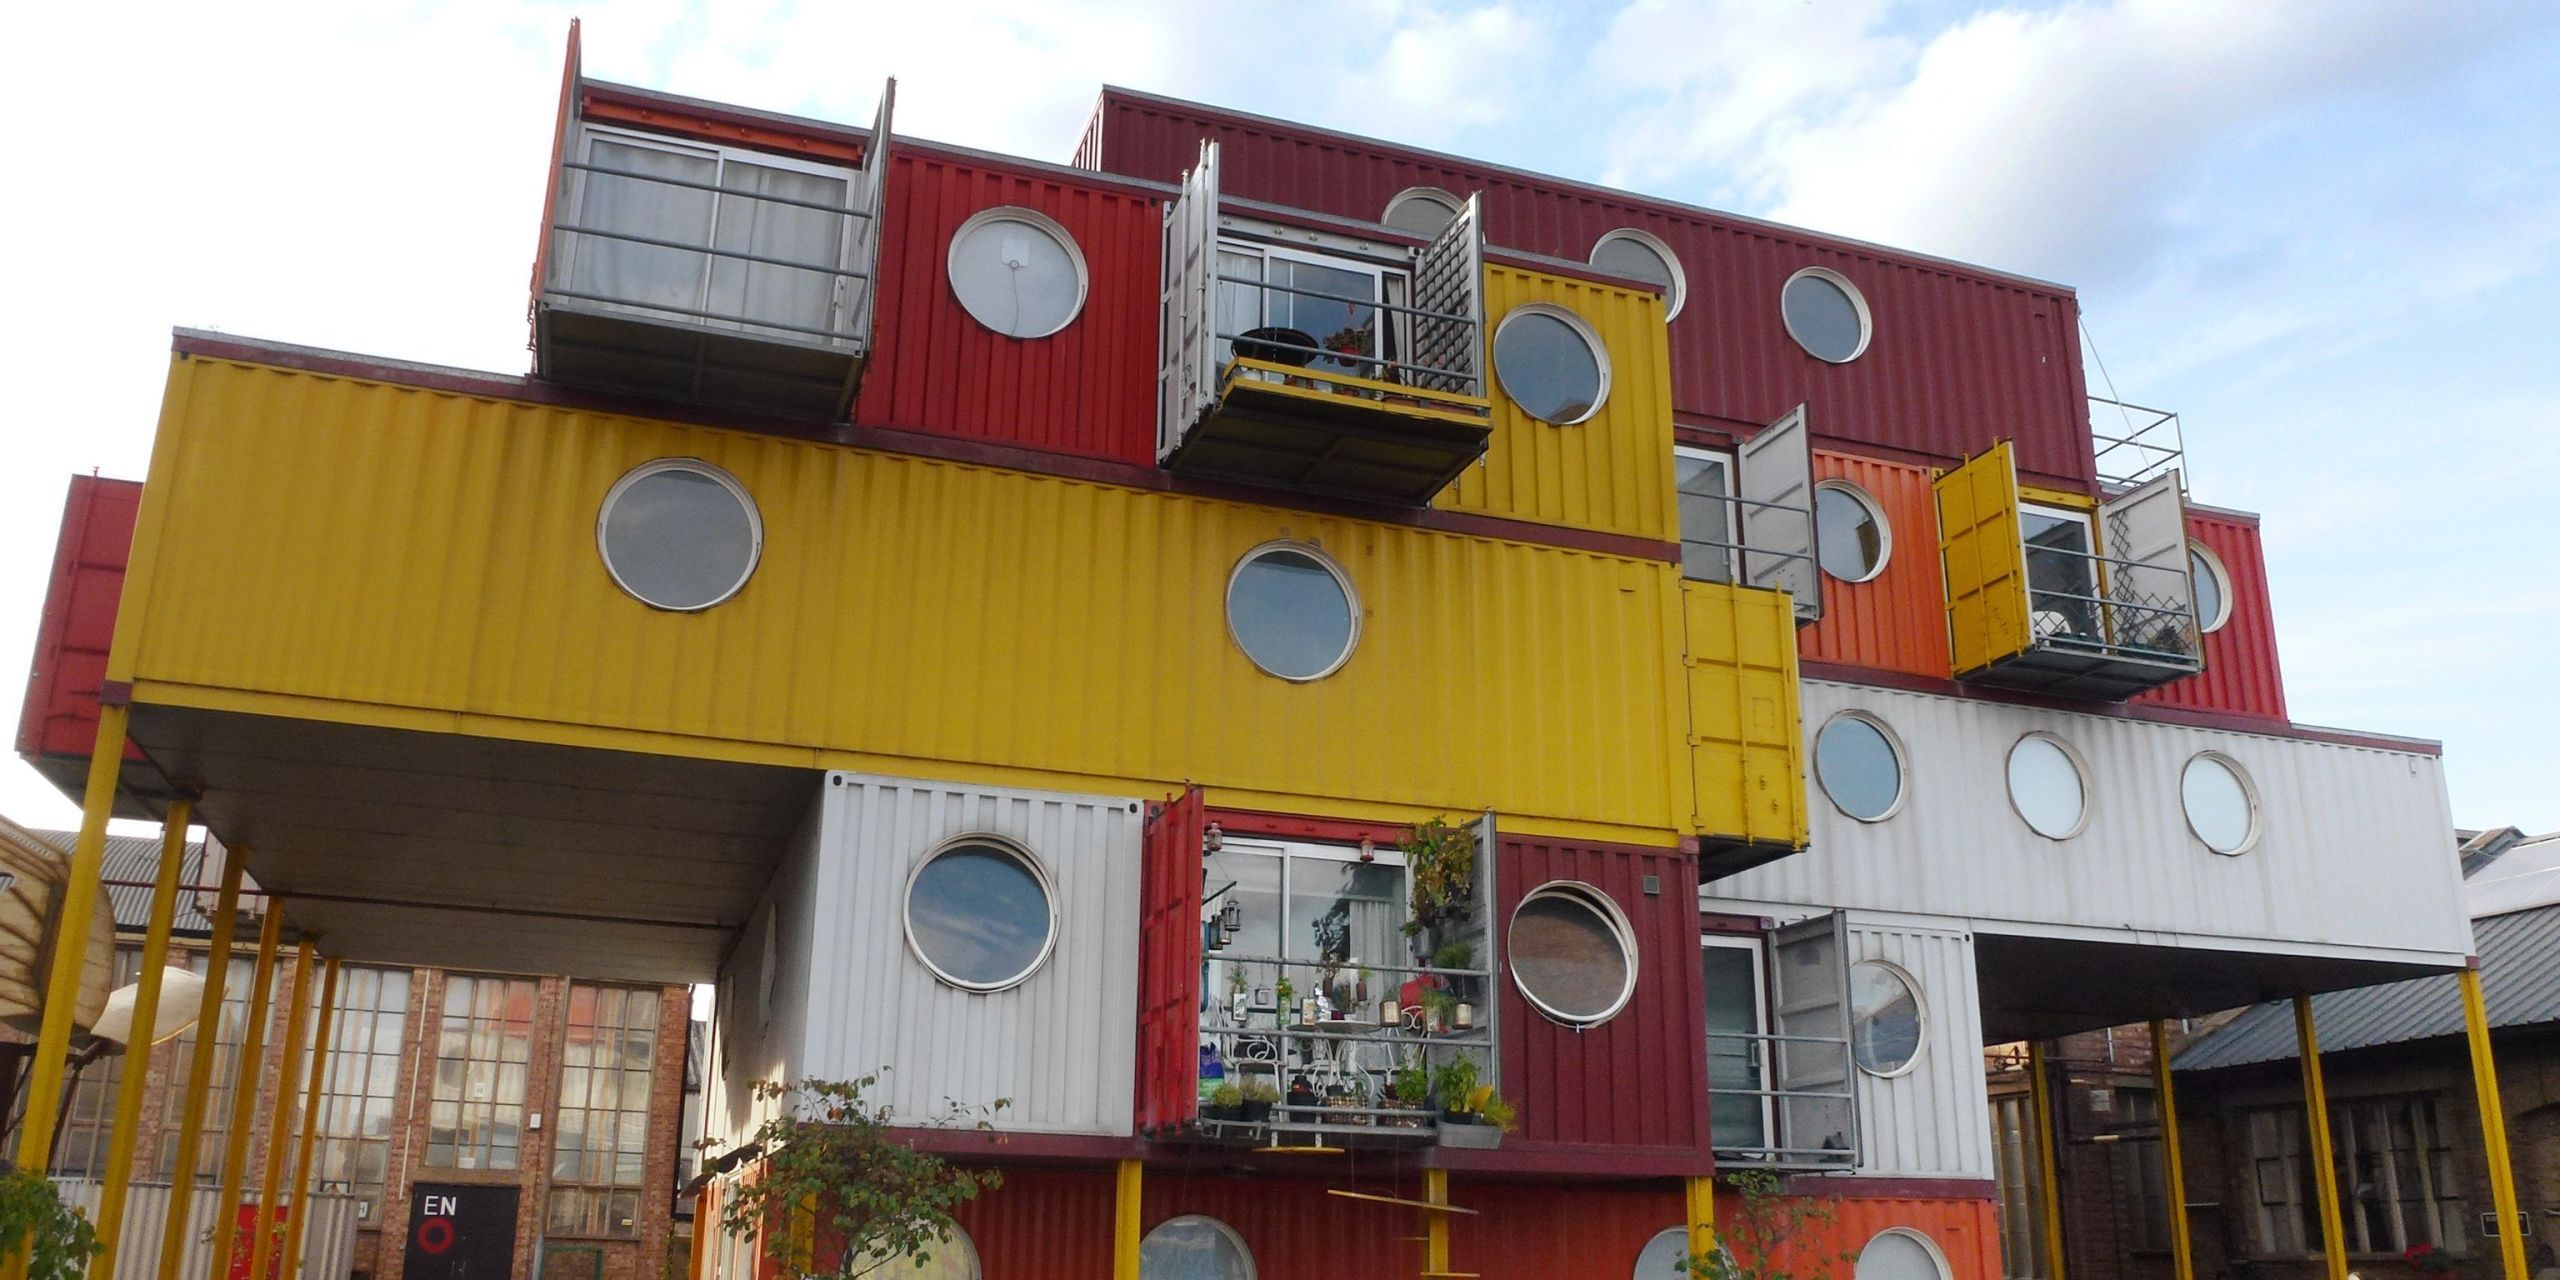 Engineers And Architects Have Transformed Ordinary Shipping Containers Into  Amazing Homes ...